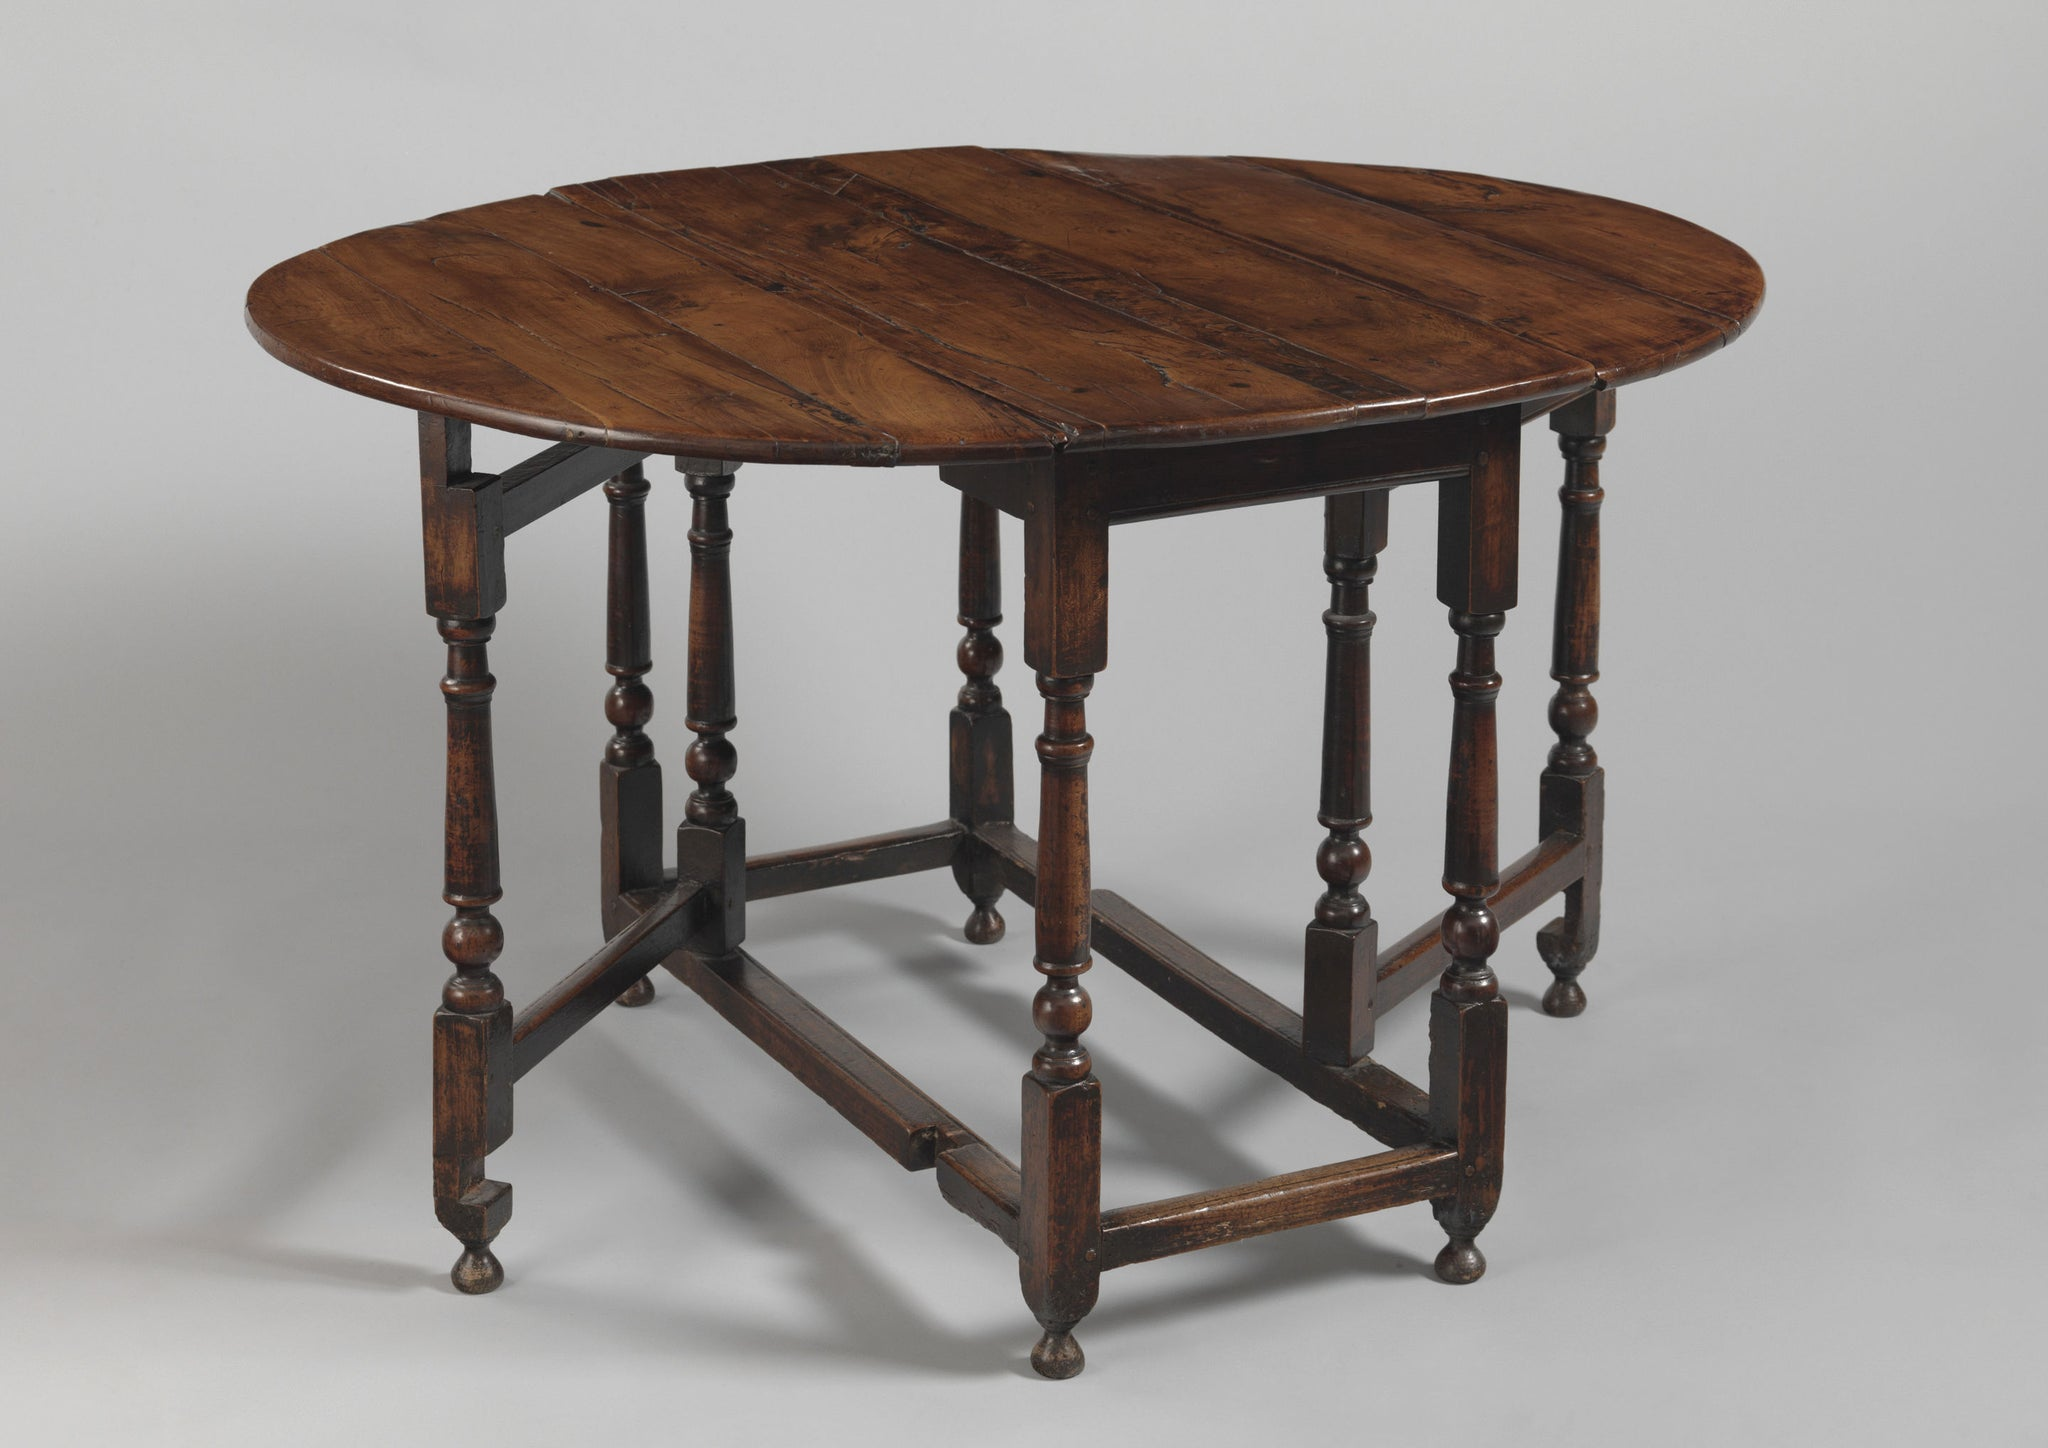 William and Mary Period Oval Table.